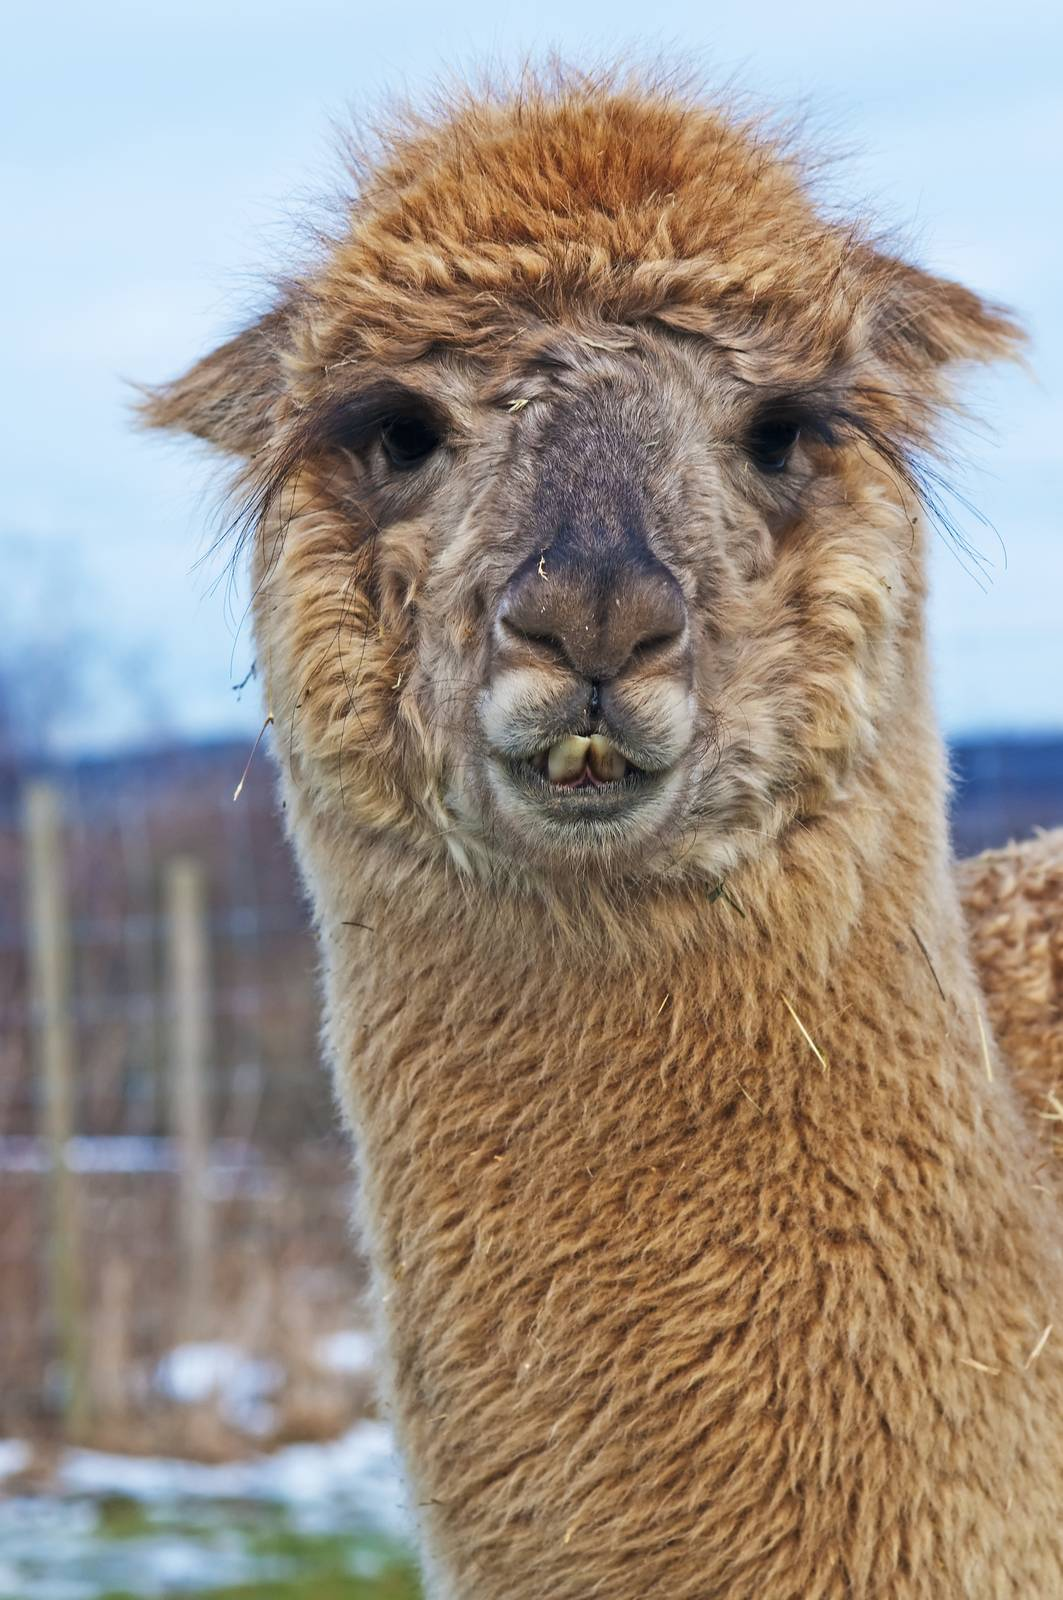 AAT, assisted animal therapy, adorable, alpaca, animal, brown - D34219768